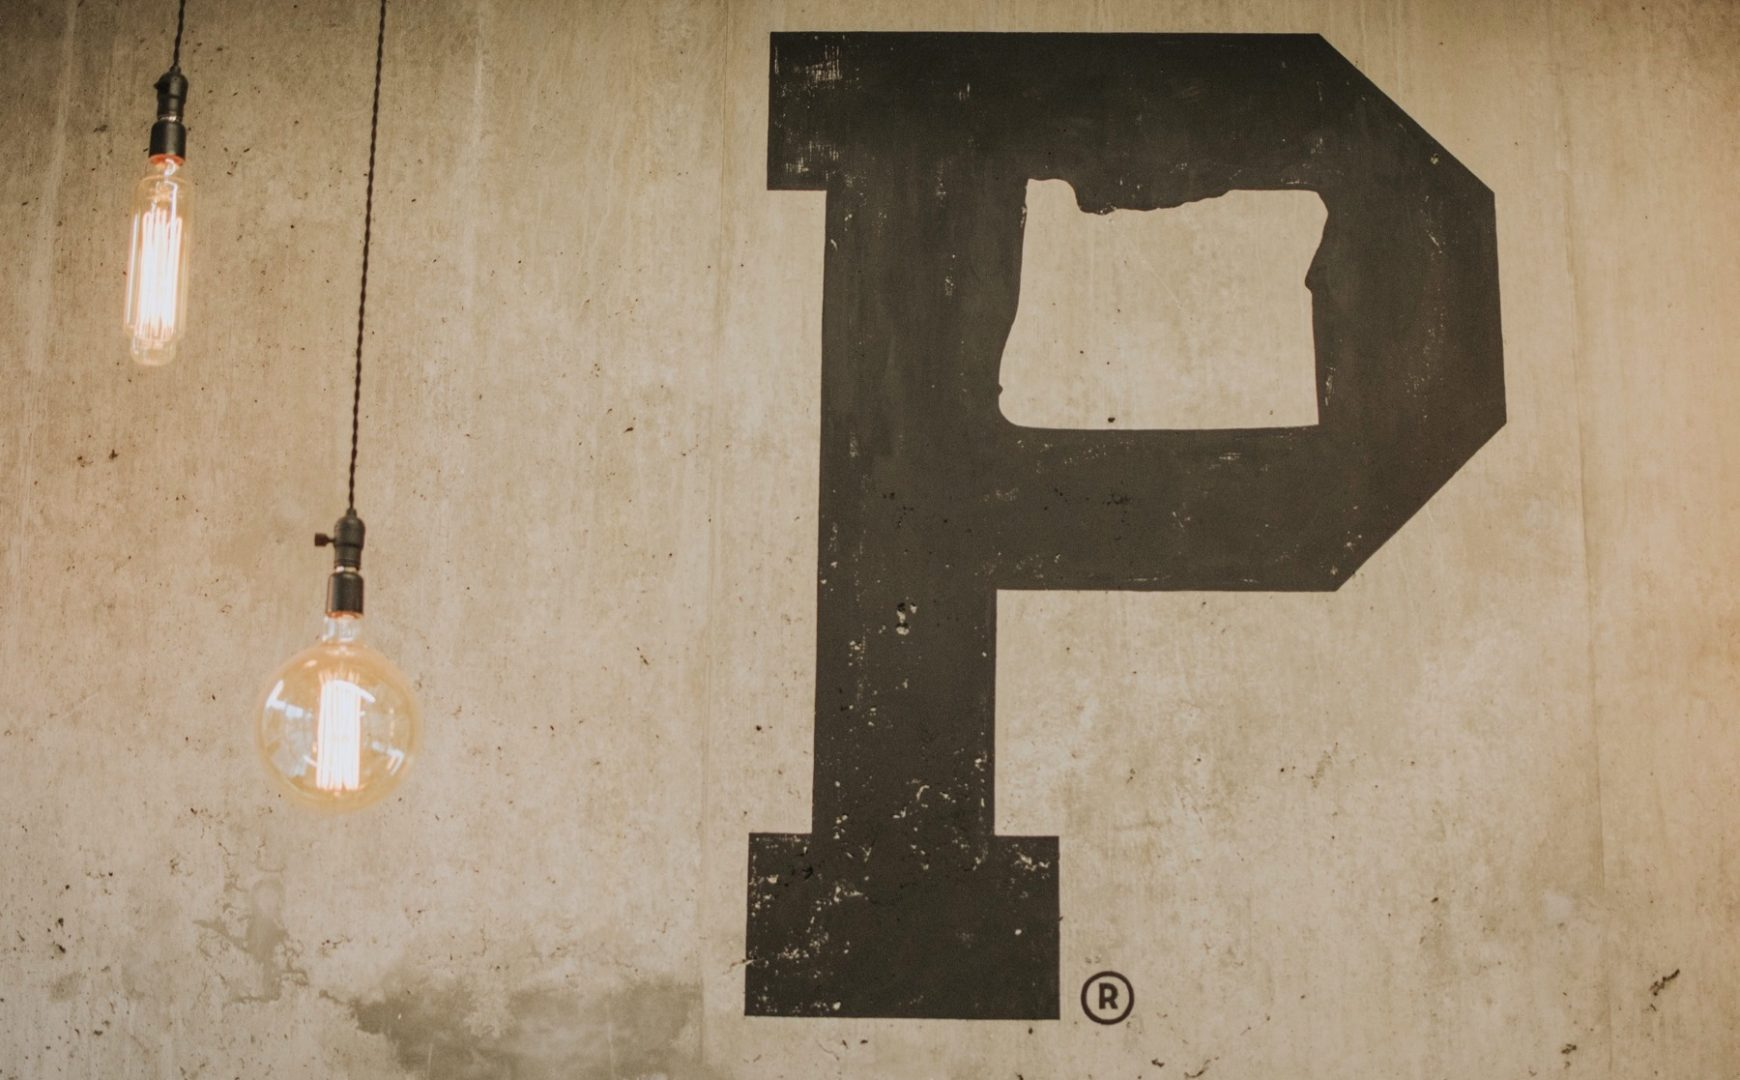 How to prevent WordPress from adding p tags